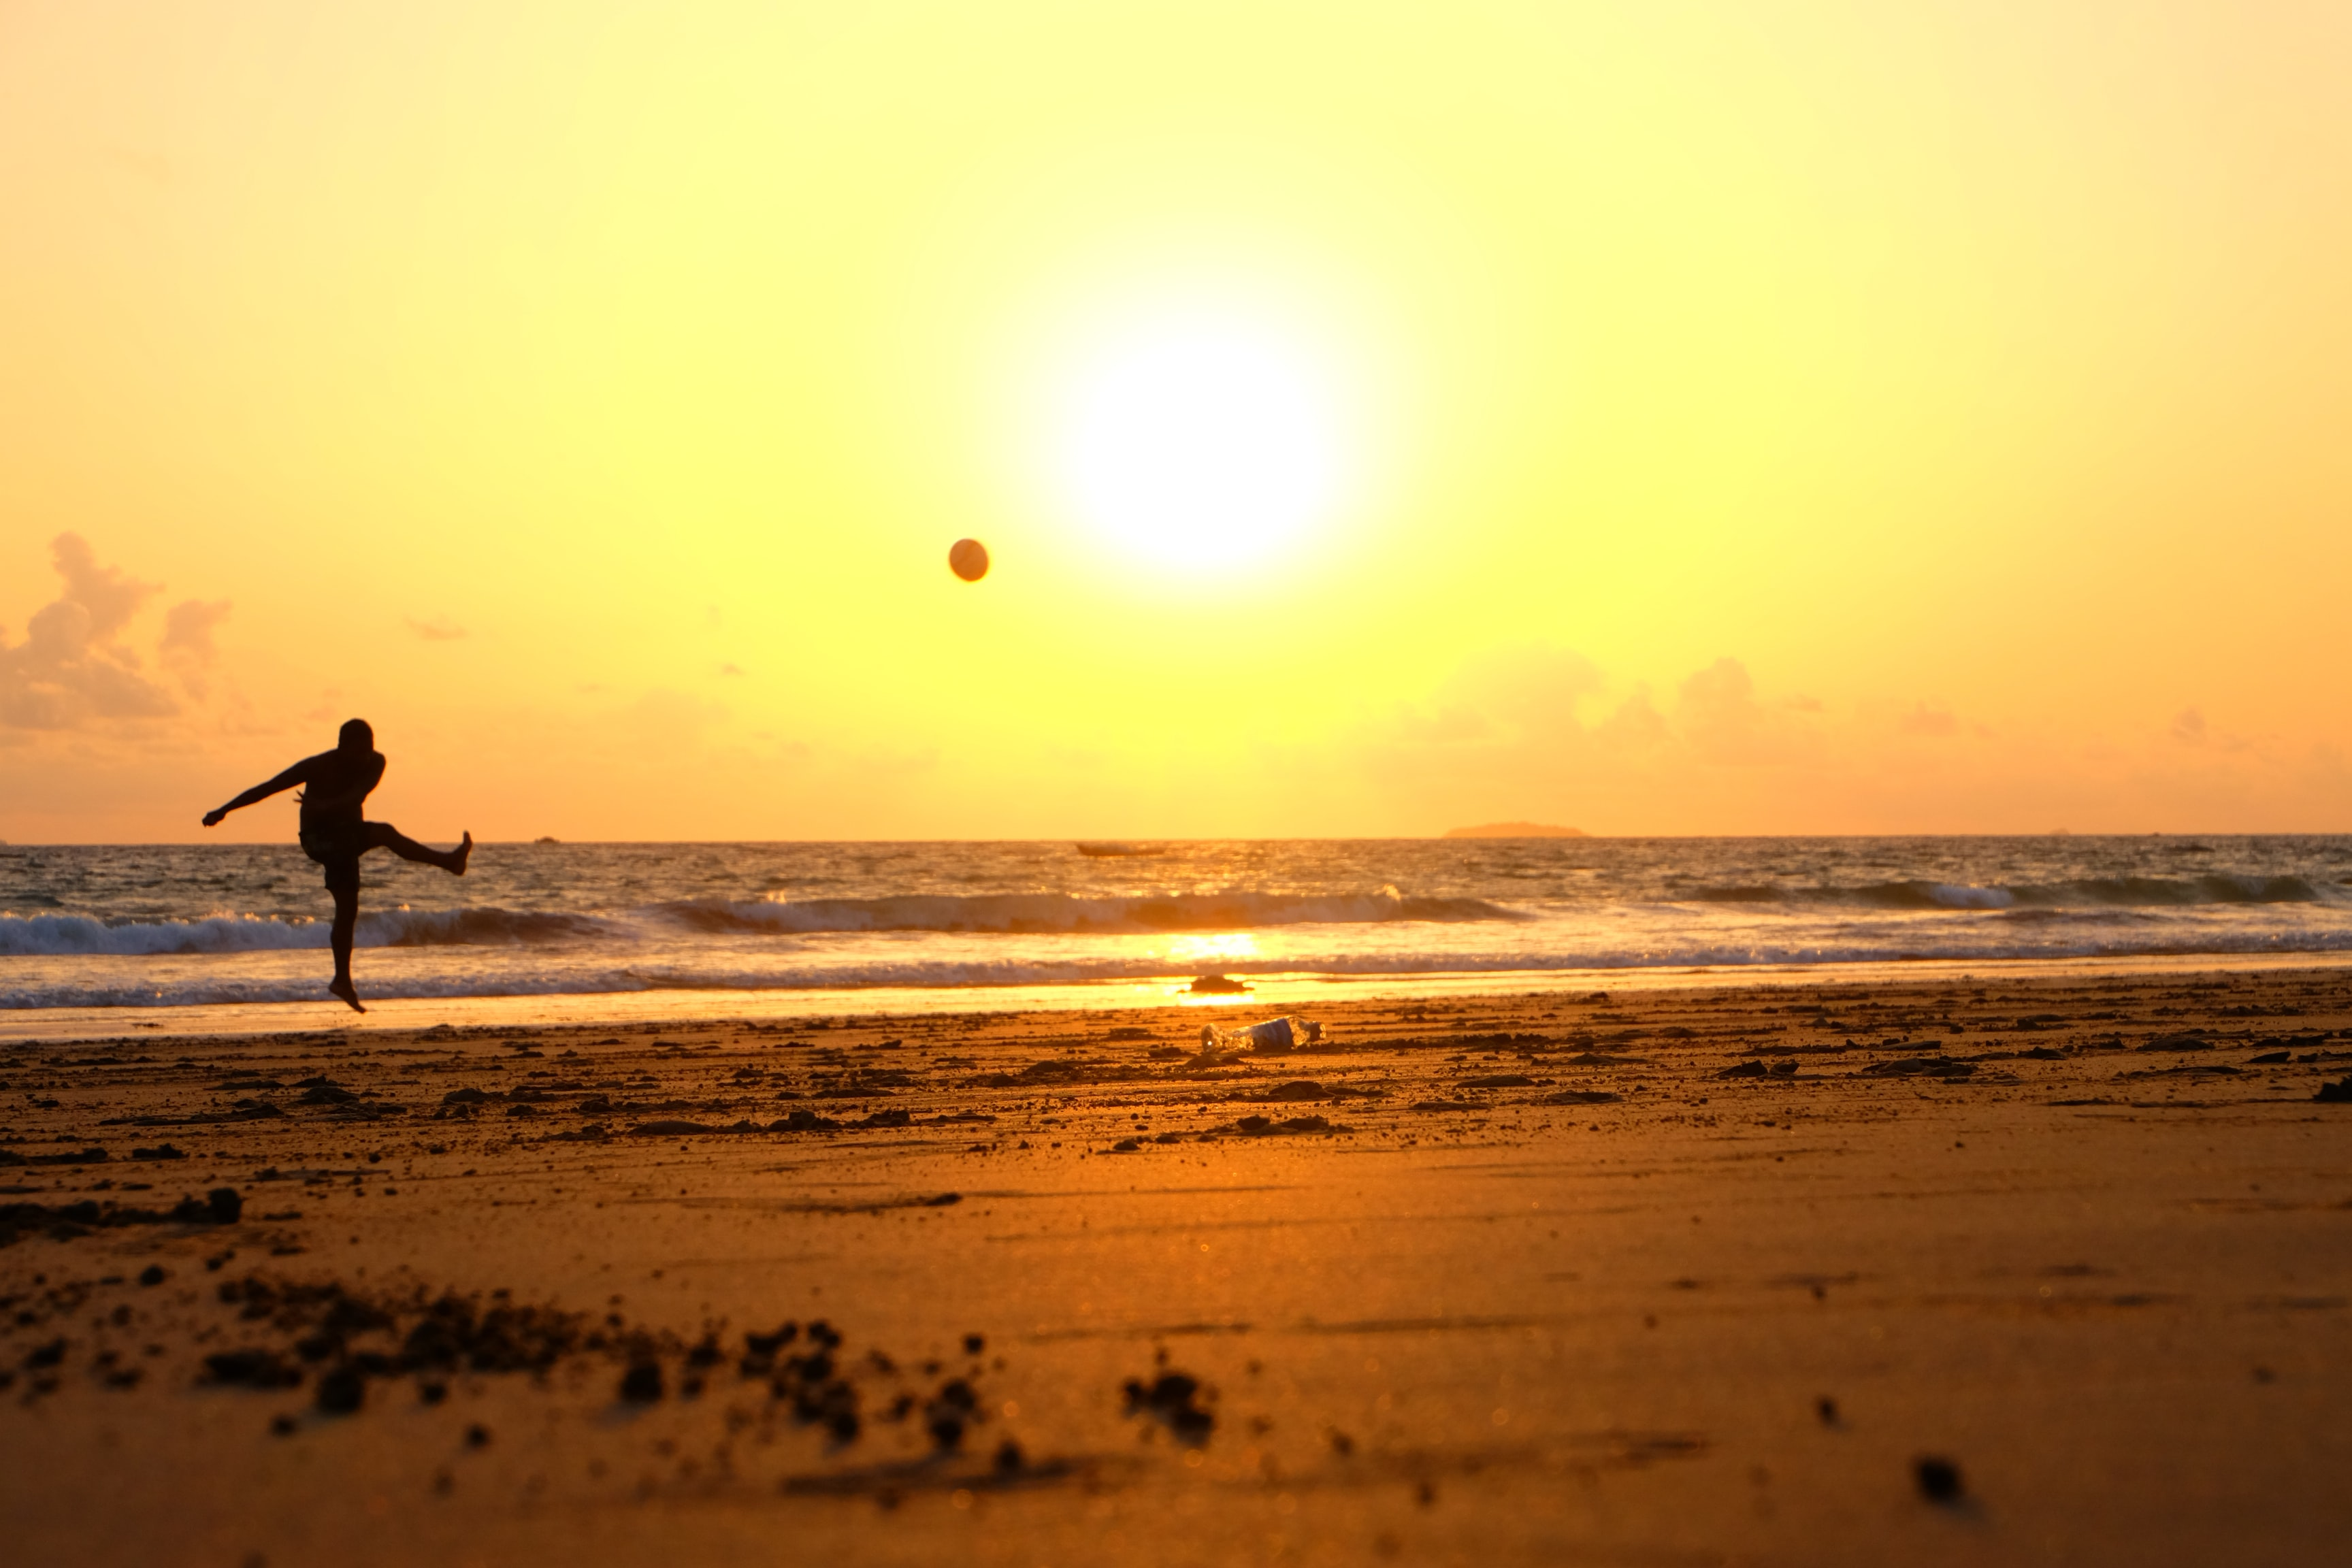 man kicking ball on seashore